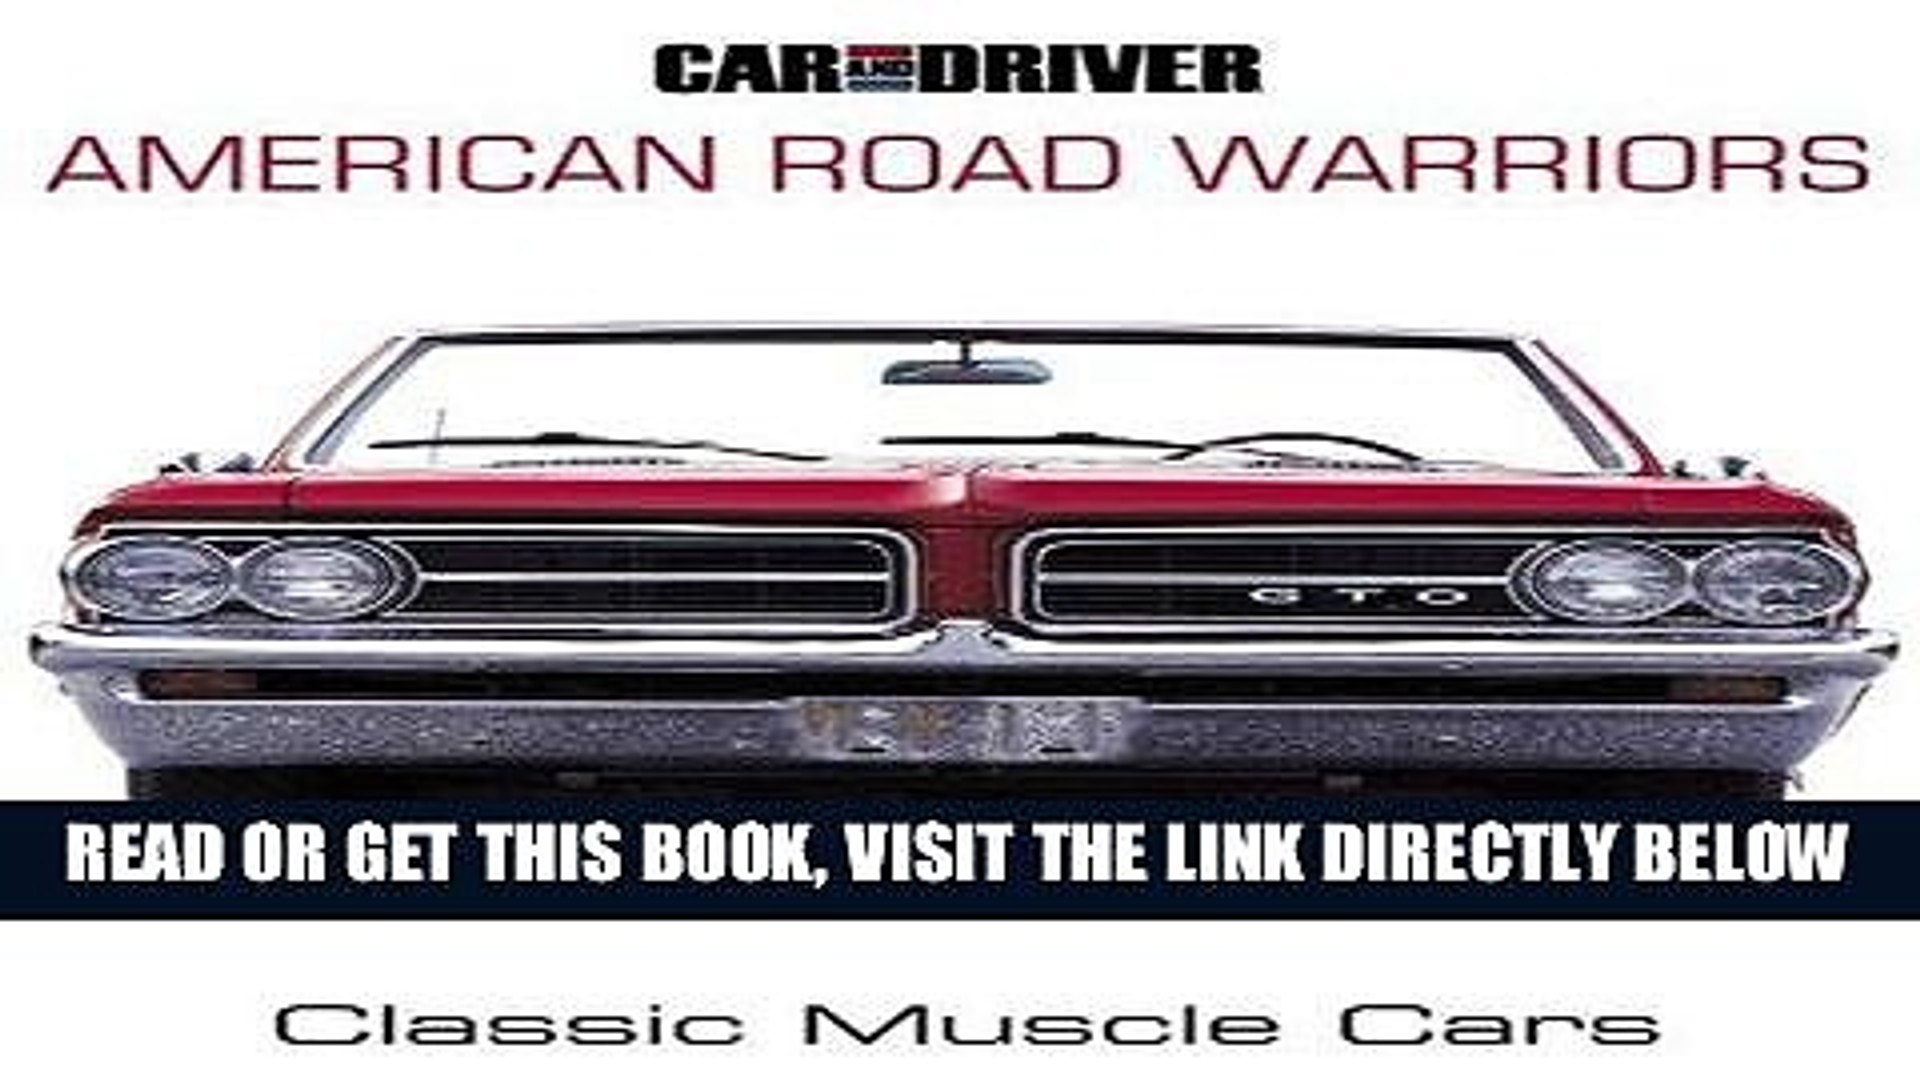 [FREE] EBOOK Car and Driver s American Road Warriors: Classic Muscle Cars ONLINE COLLECTION